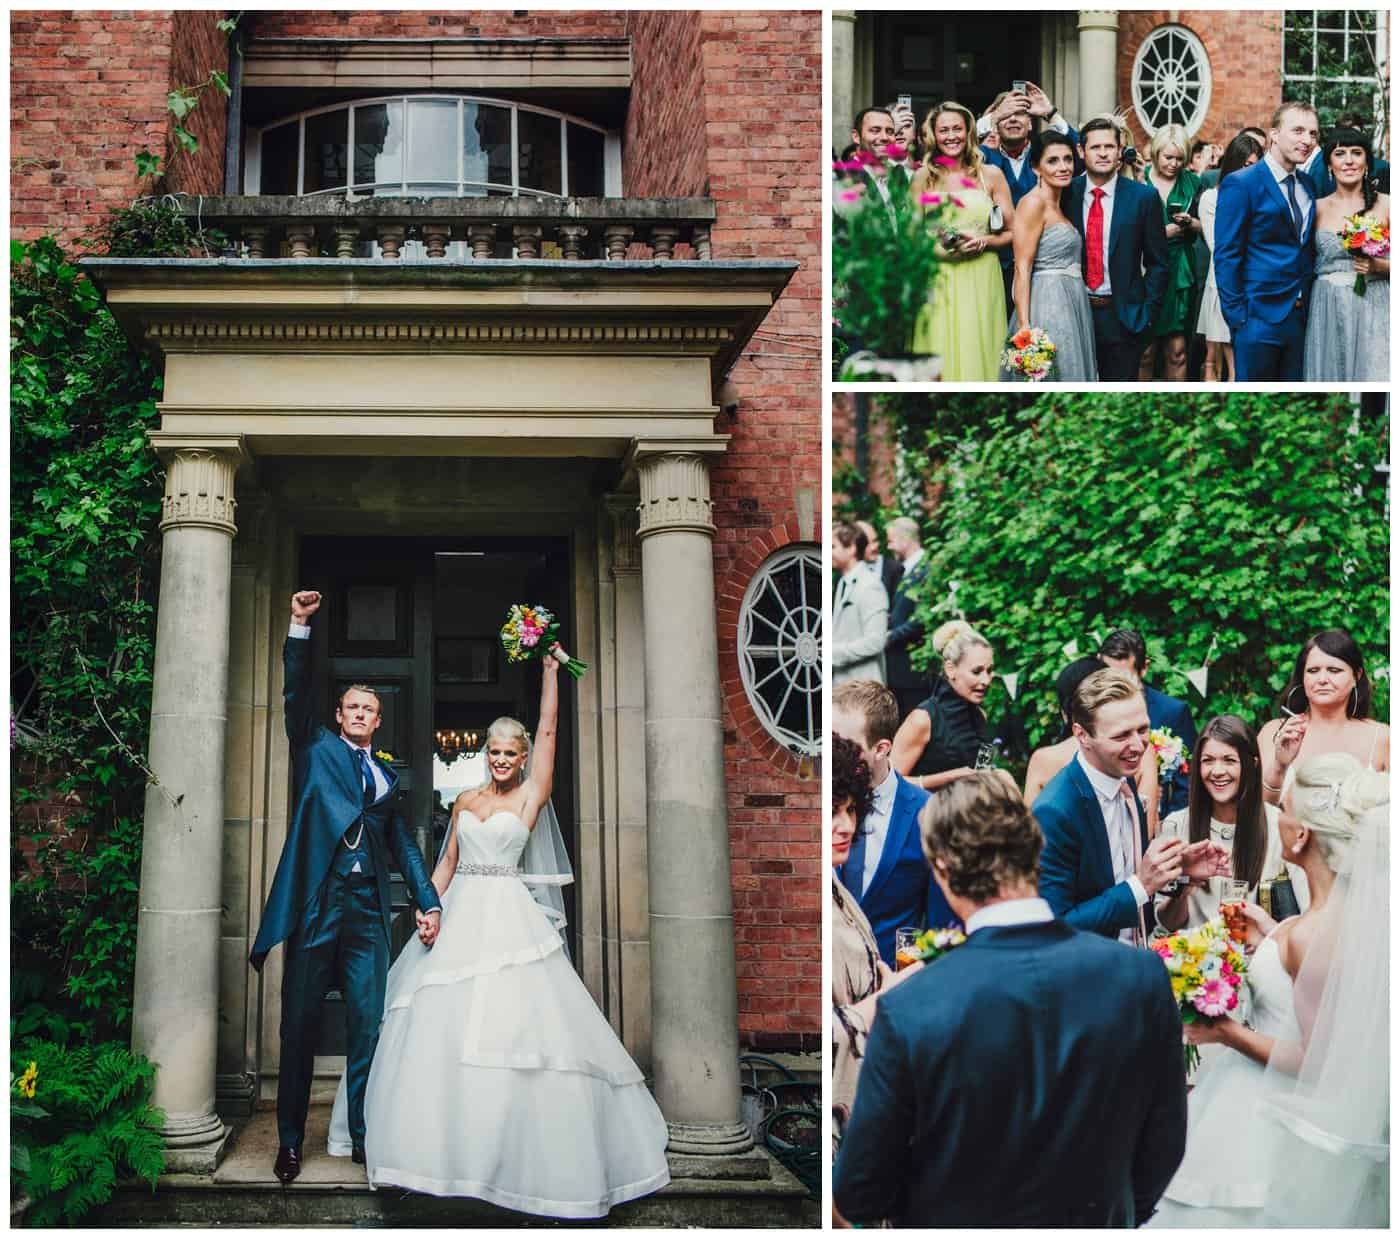 Best Walcot Hall Wedding Photography